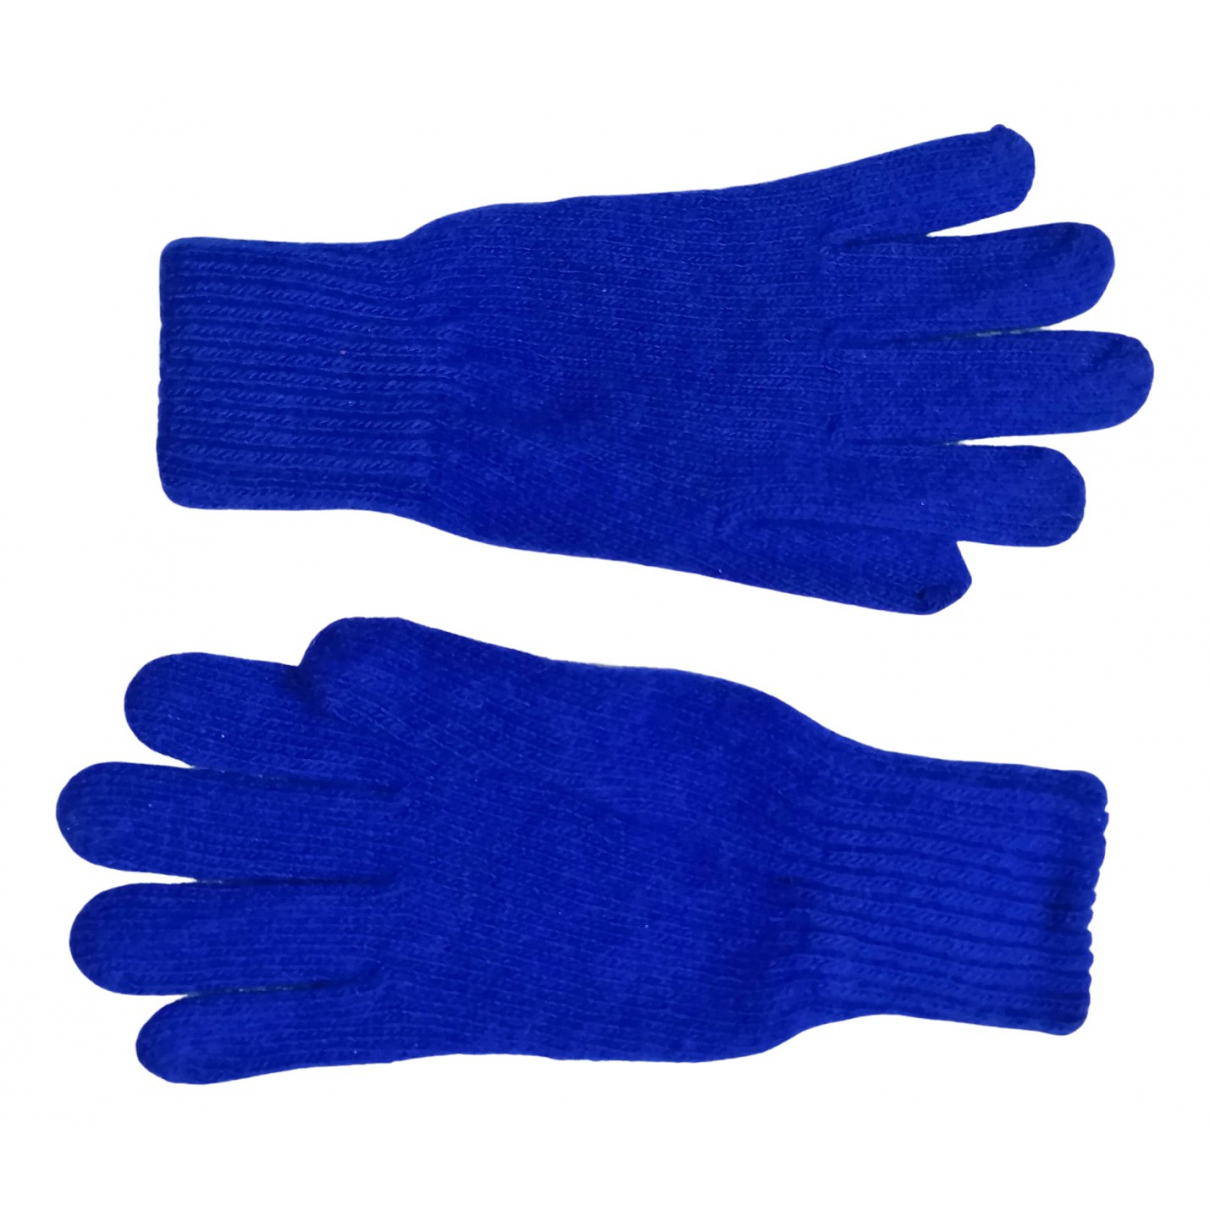 Non Signé / Unsigned N Blue Wool Gloves for Women S International